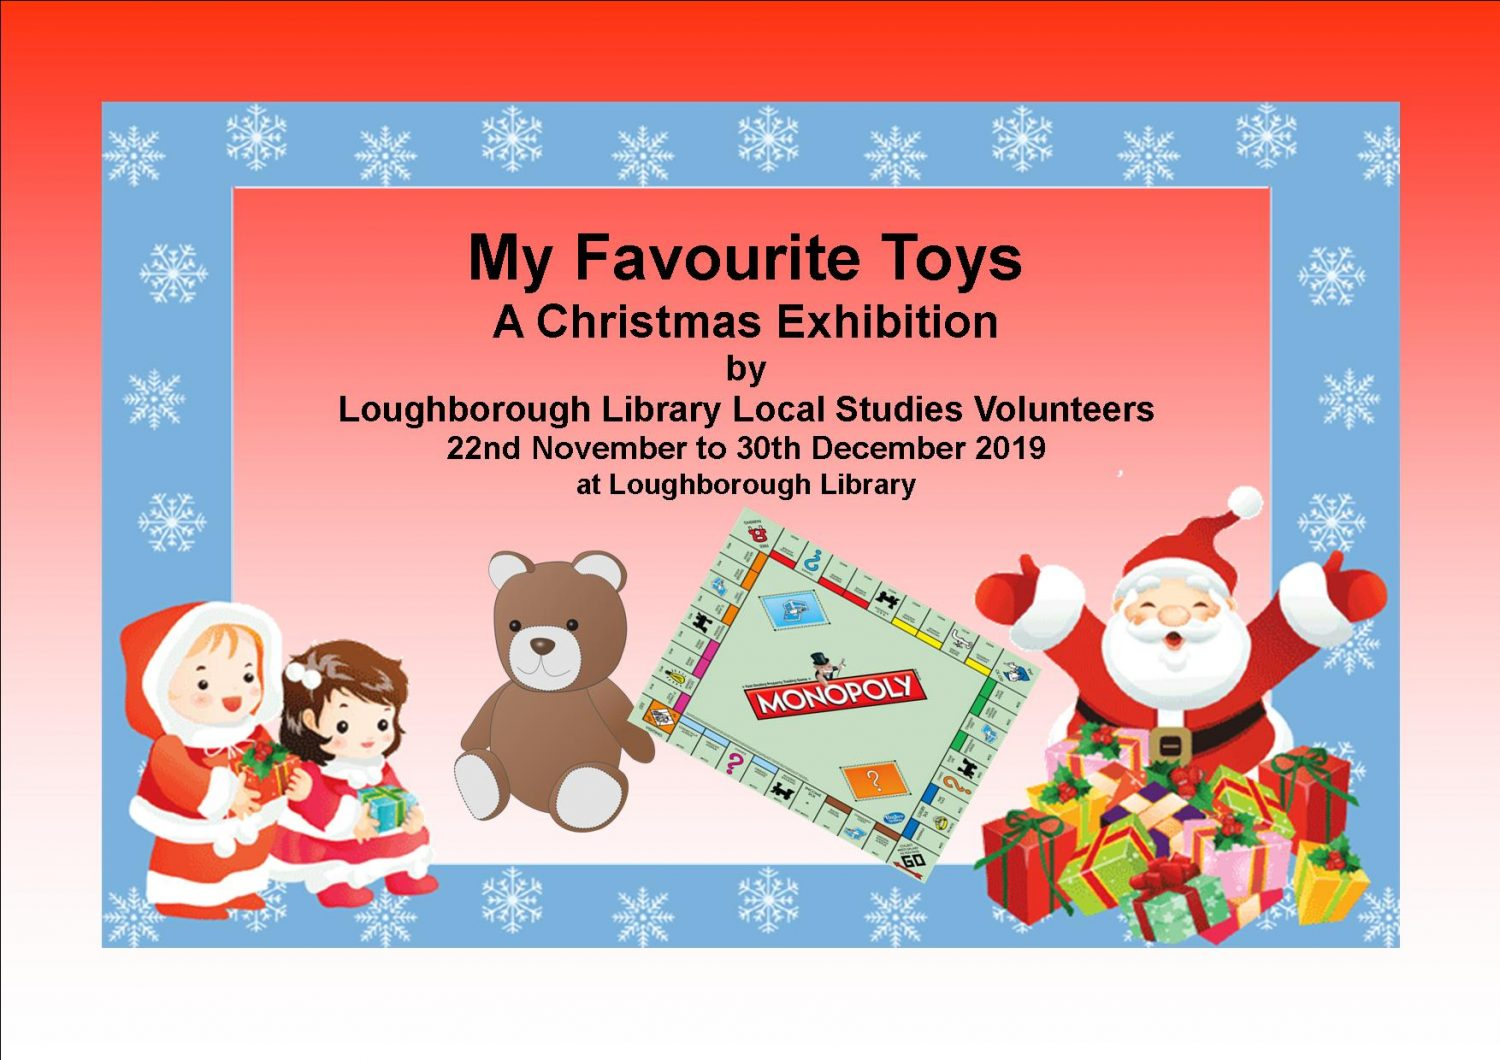 New Exhibition at the Loughborough Library